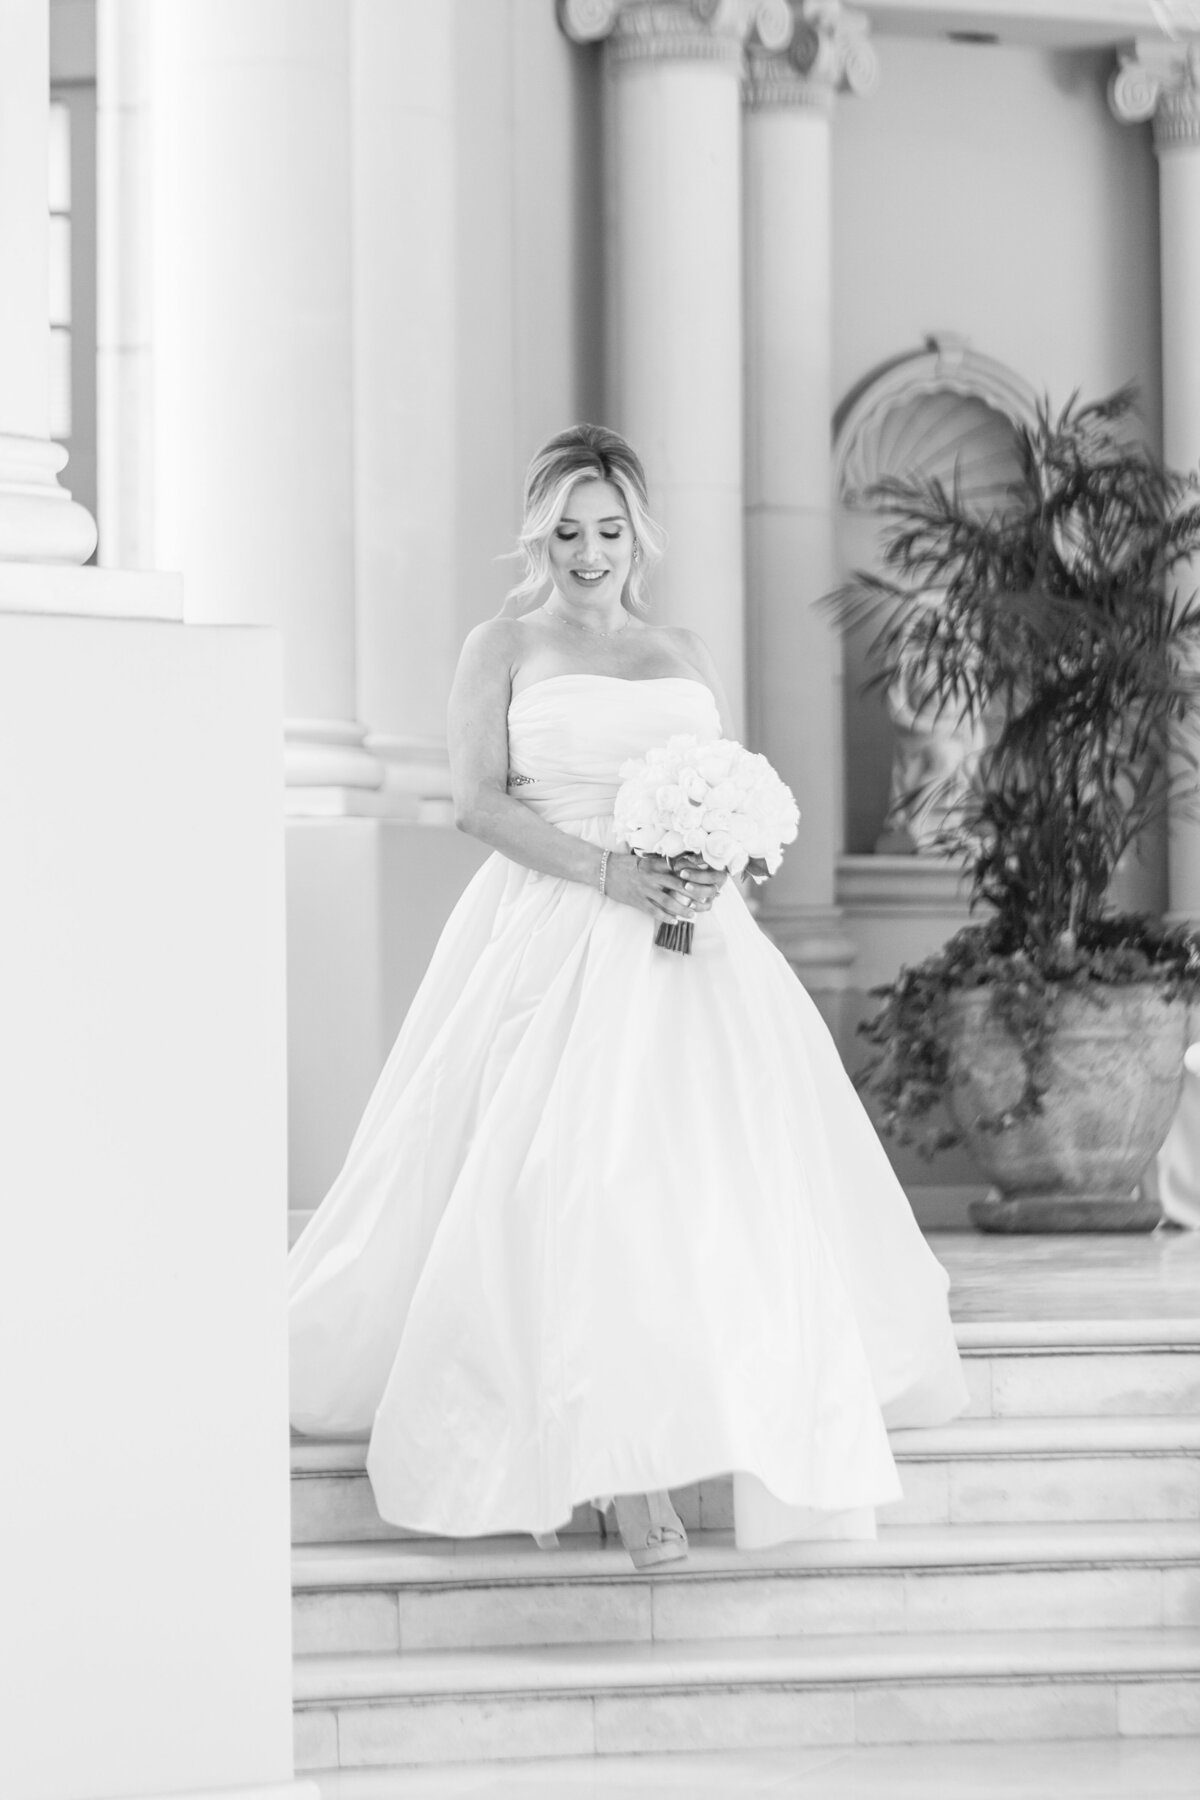 Kelli-Bee-Photography-Gallery-Malibu-Los-Angeles-Wedding-Luxury-Lifestyle-Photographer-Lauren-Ben-0031